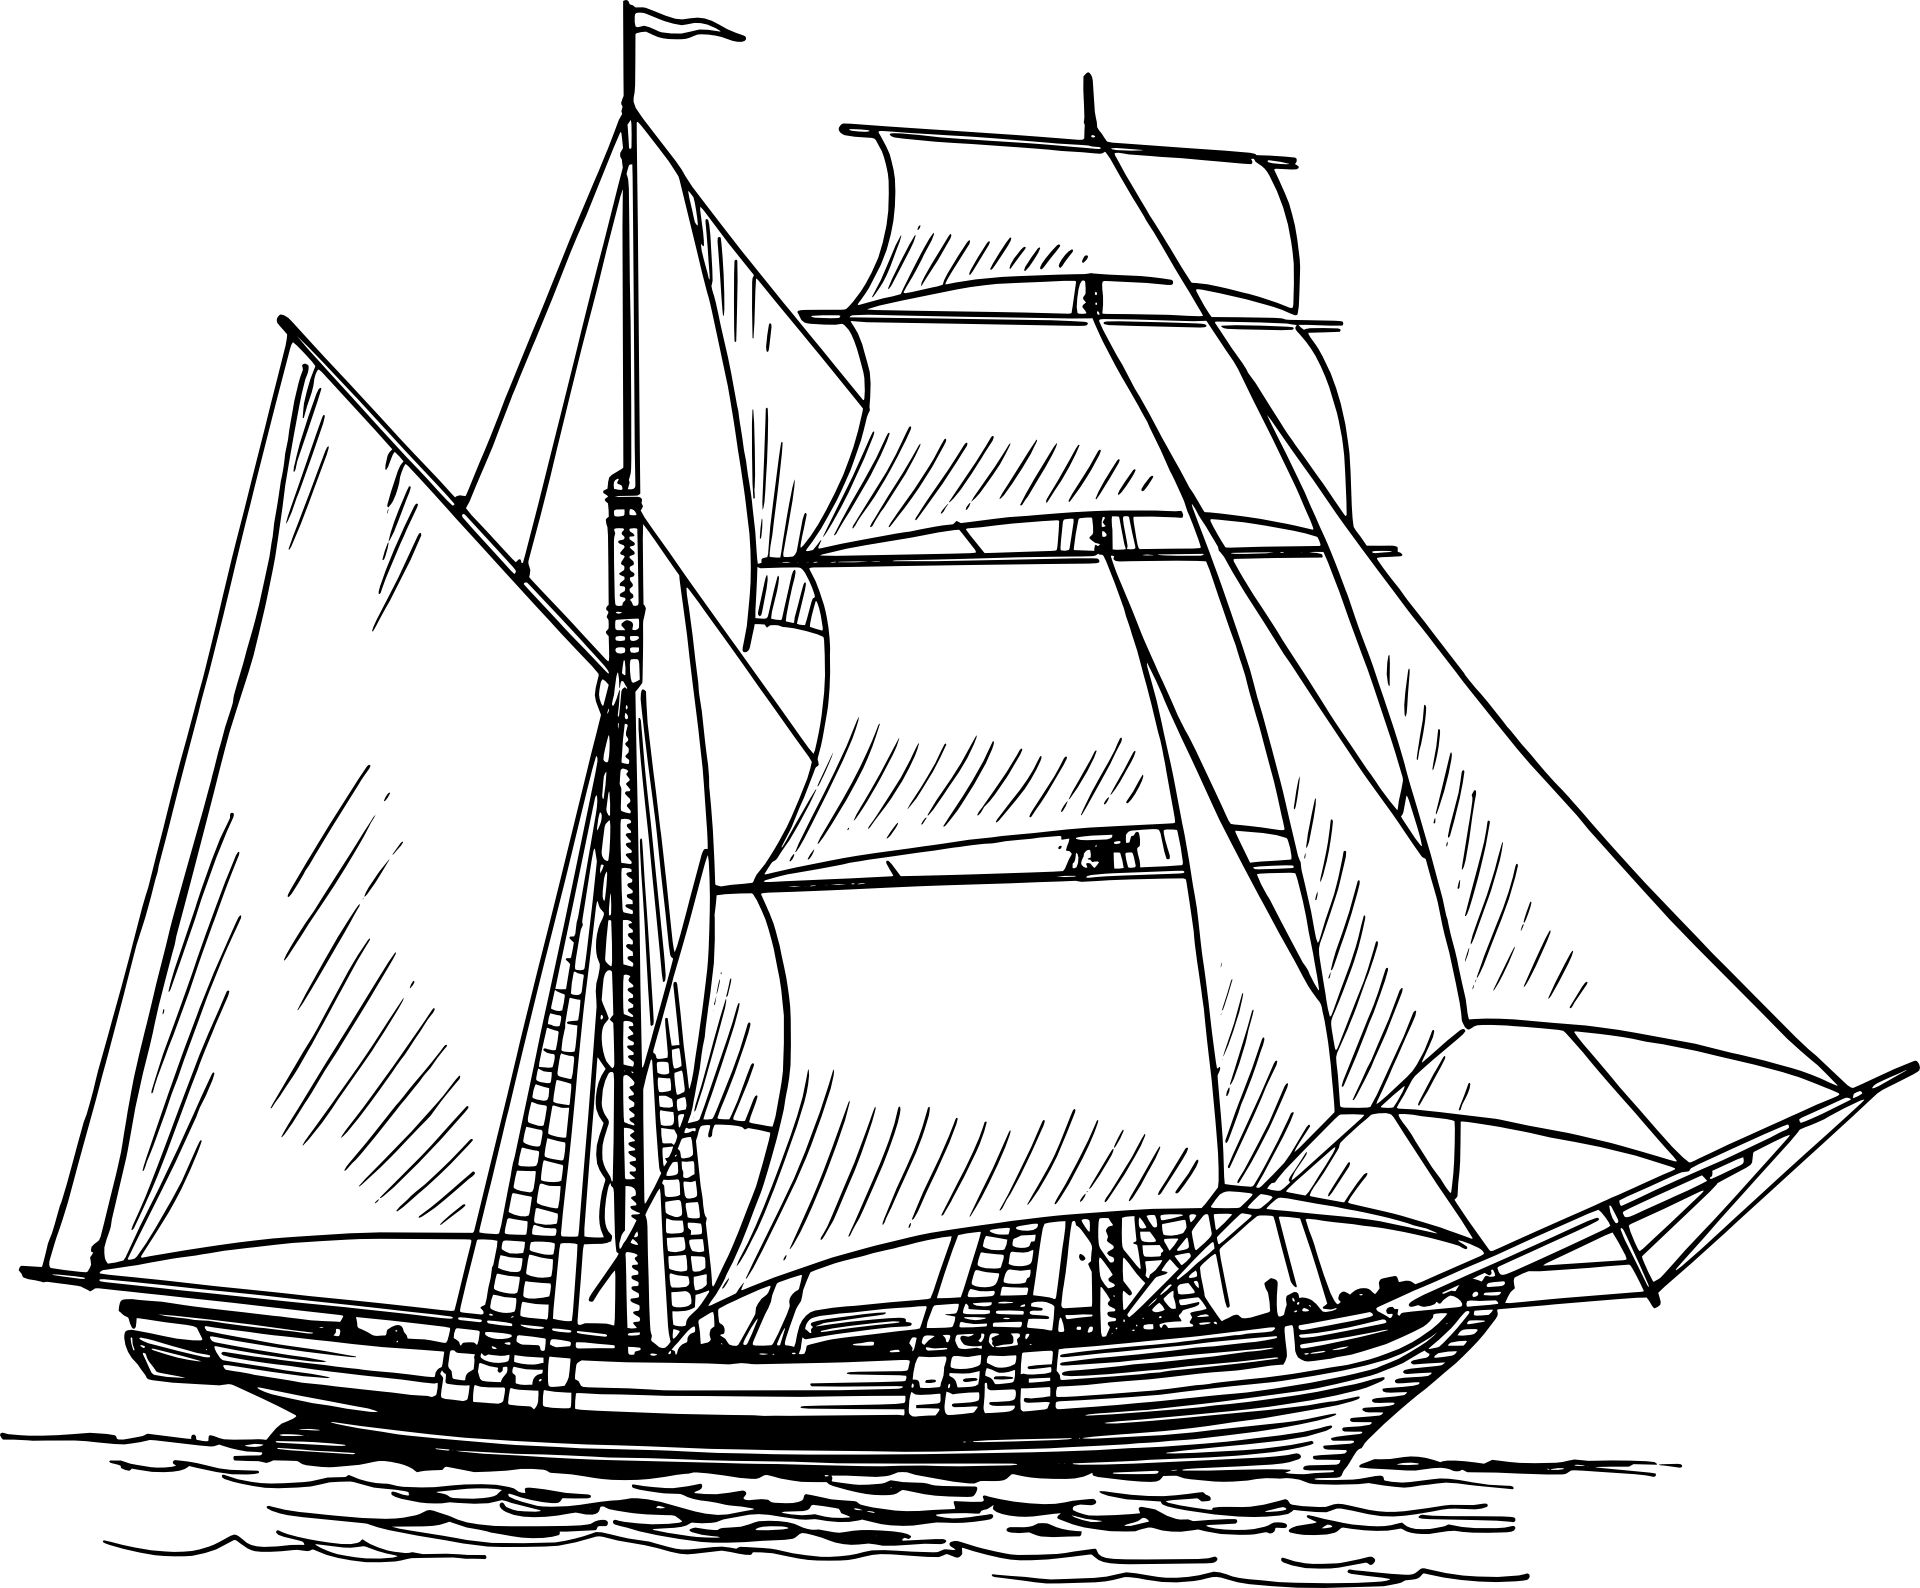 Boat clipart old fashioned. Historical sailing ships and